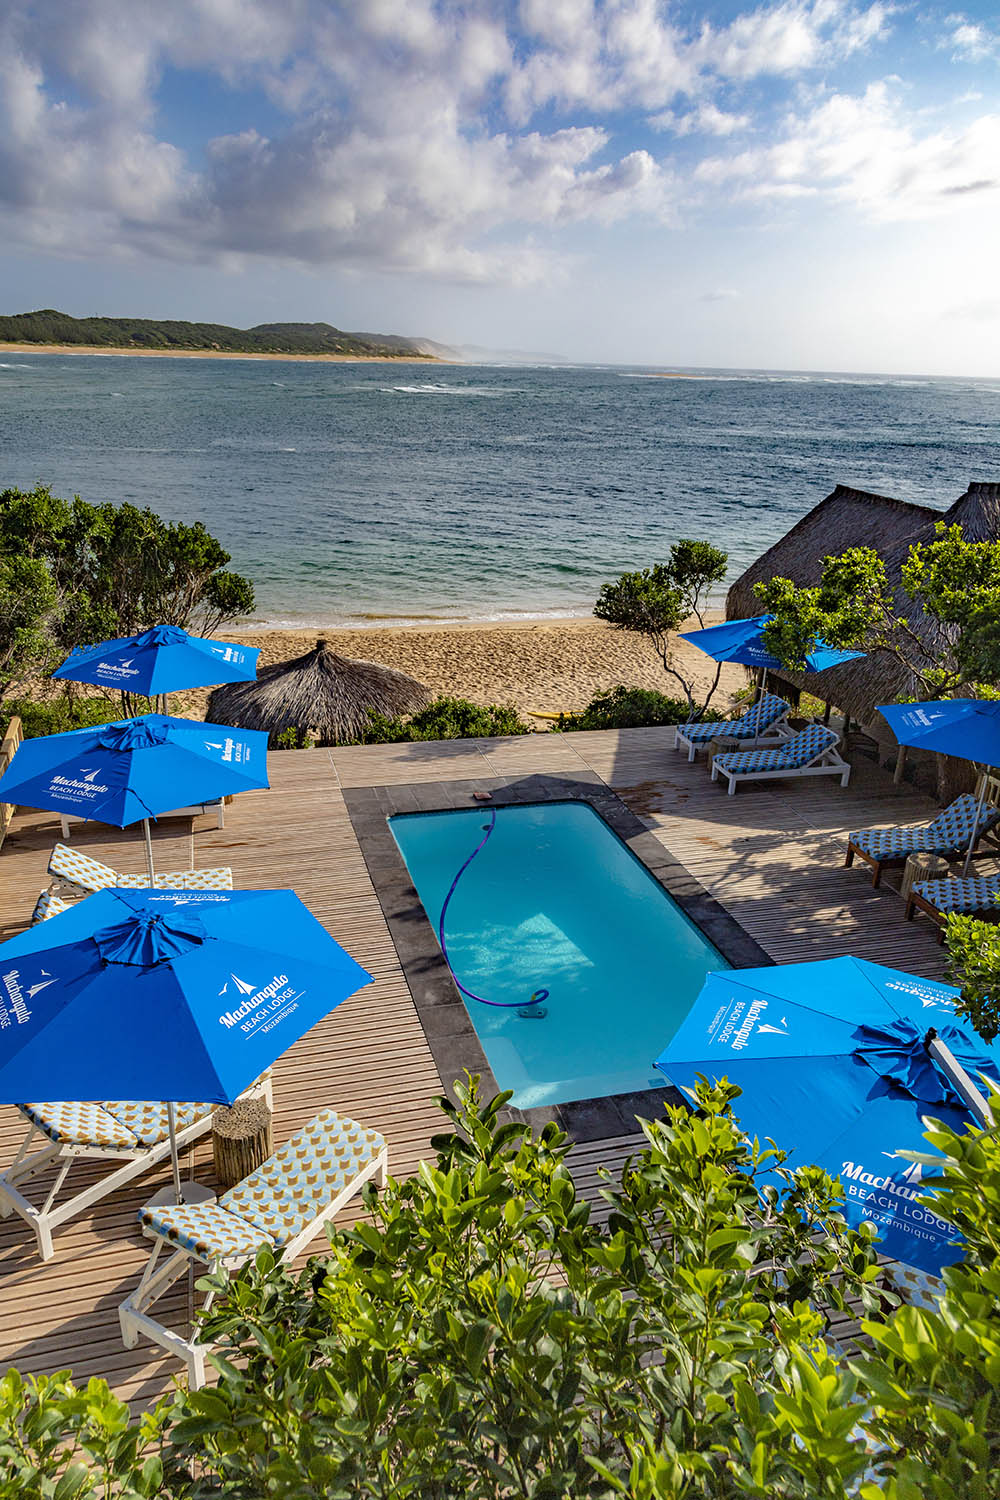 machangulo beach lodge mozambique-lodges-zambia-in-style-maputo-island-tours-pool-and-deck